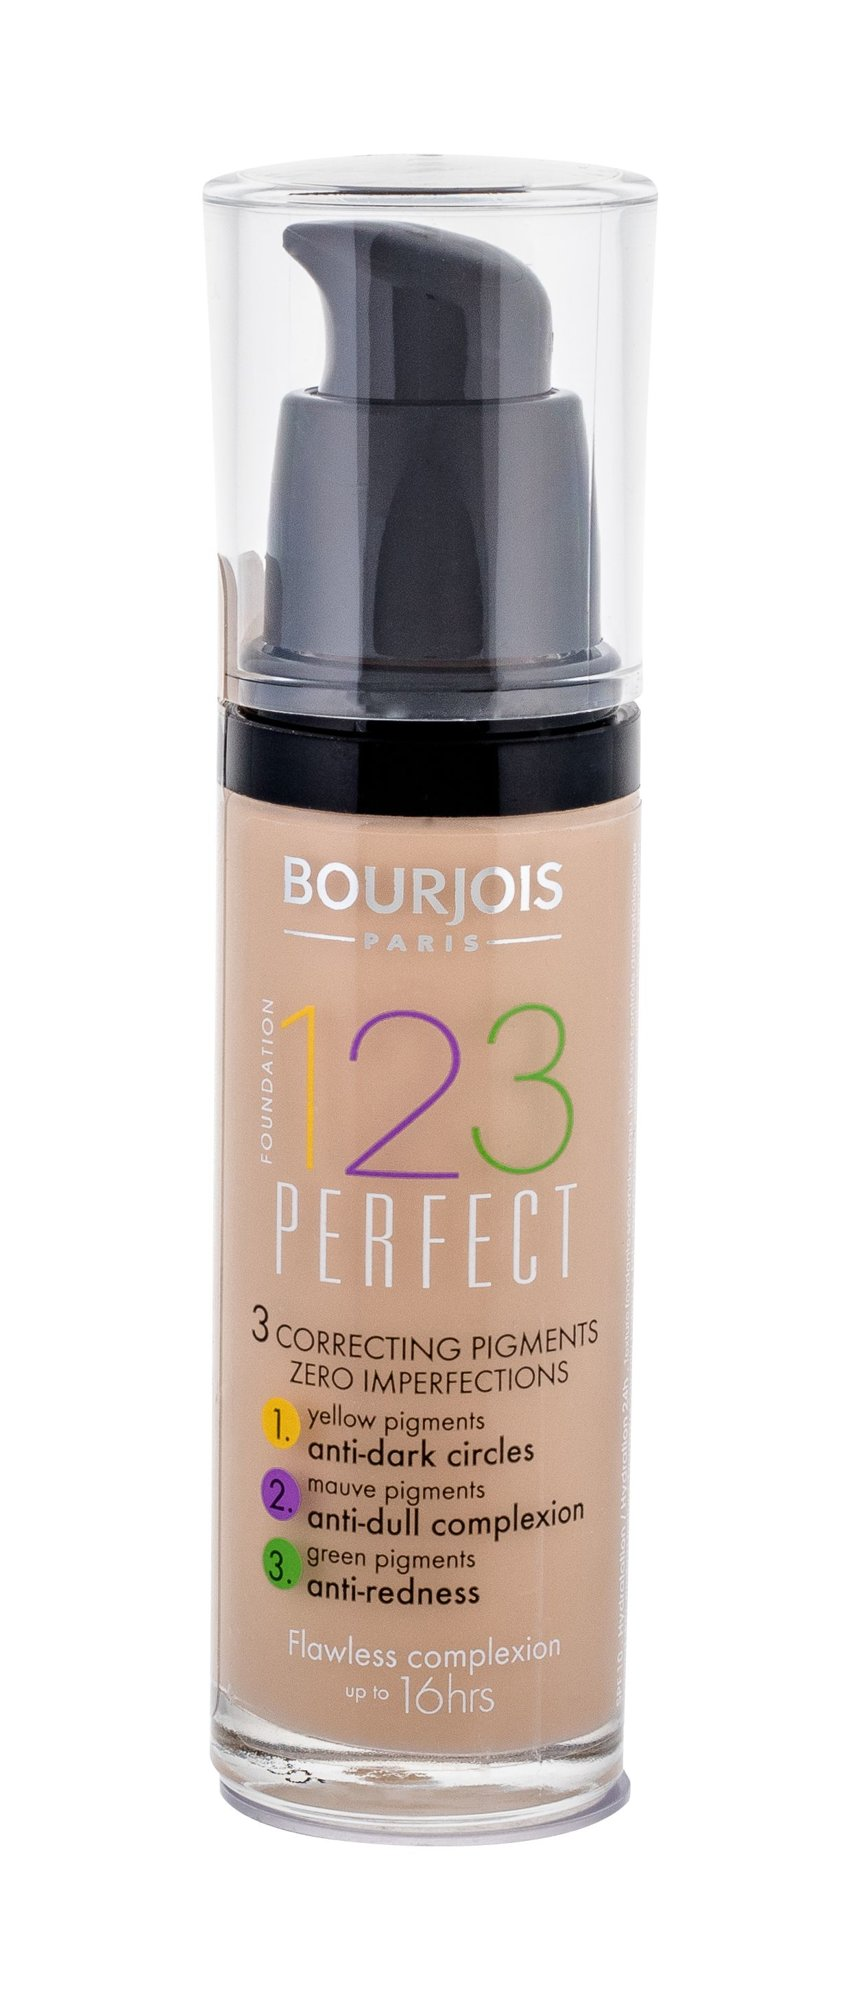 BOURJOIS Paris 123 Perfect Cosmetic 30ml 52 Vanille